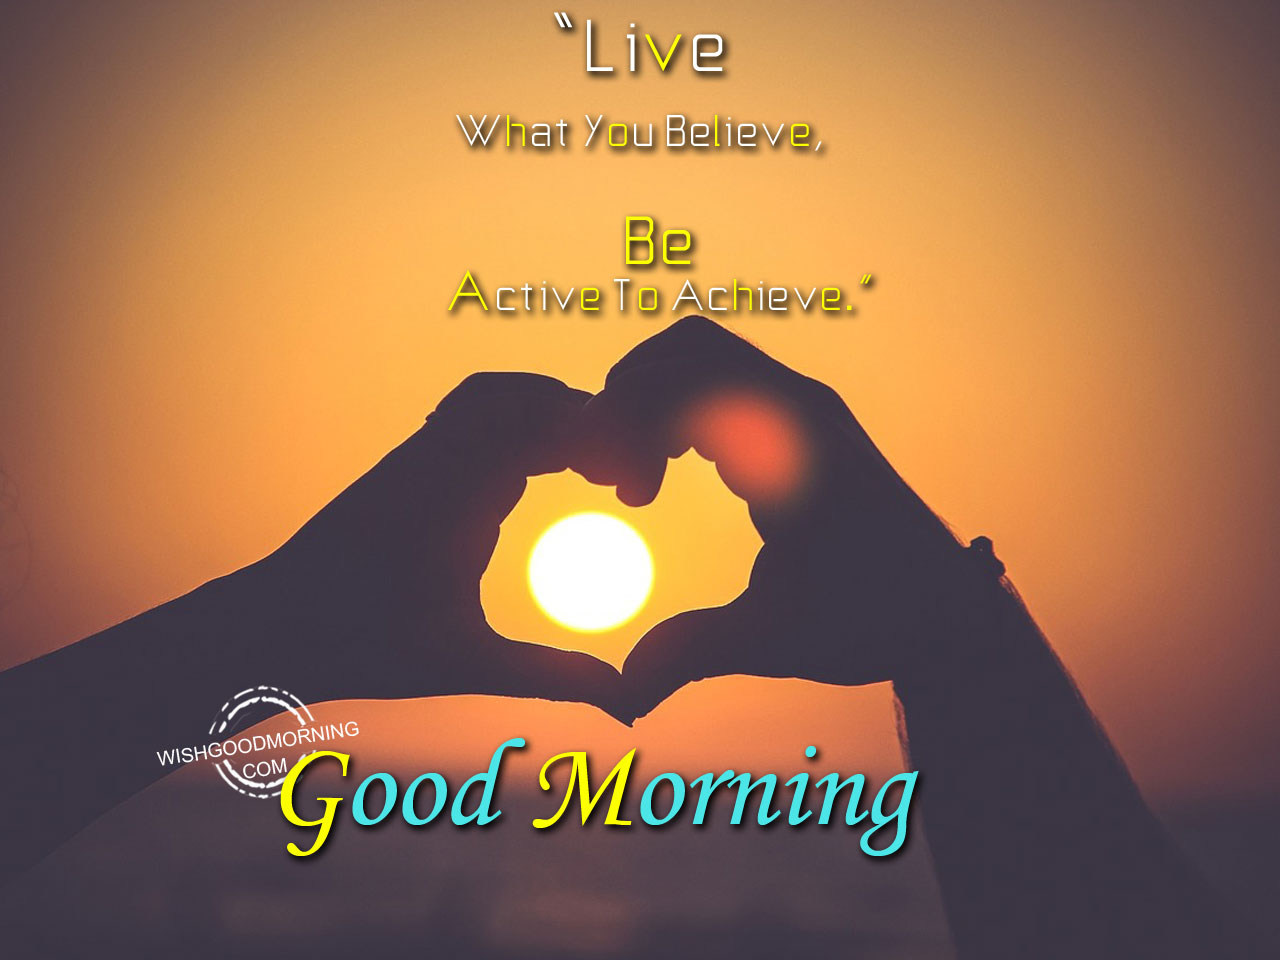 Live What You Believe Good Morning Pictures Wishgoodmorningcom